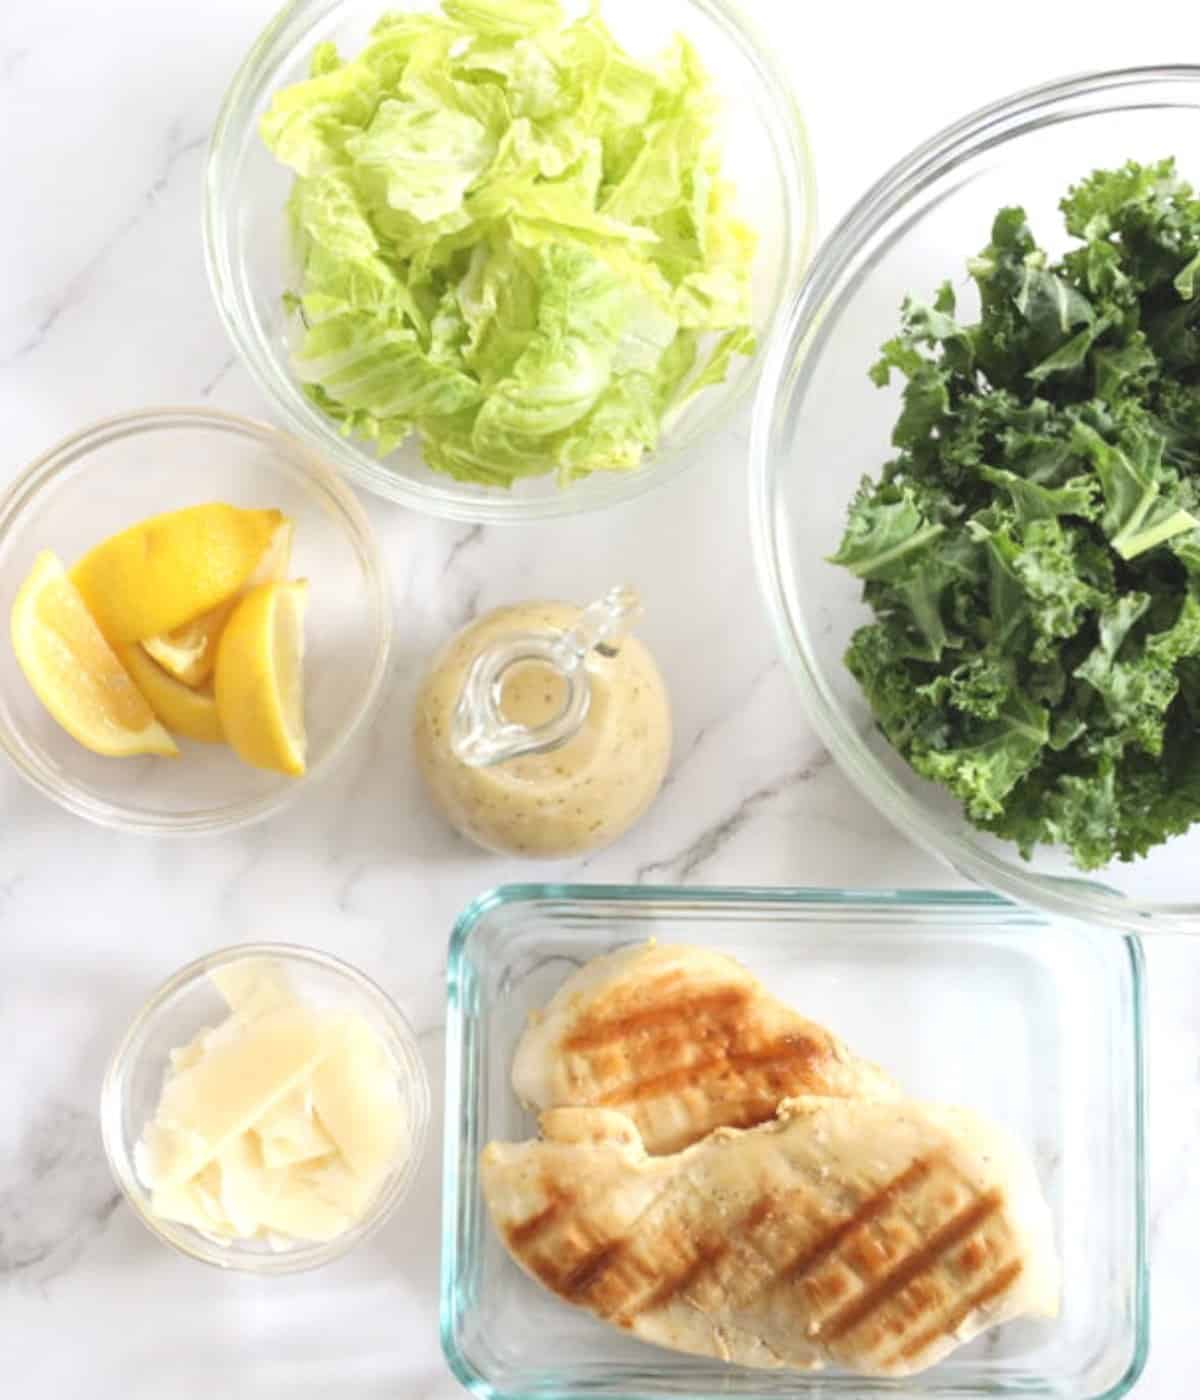 salad ingredients with grilled chicken